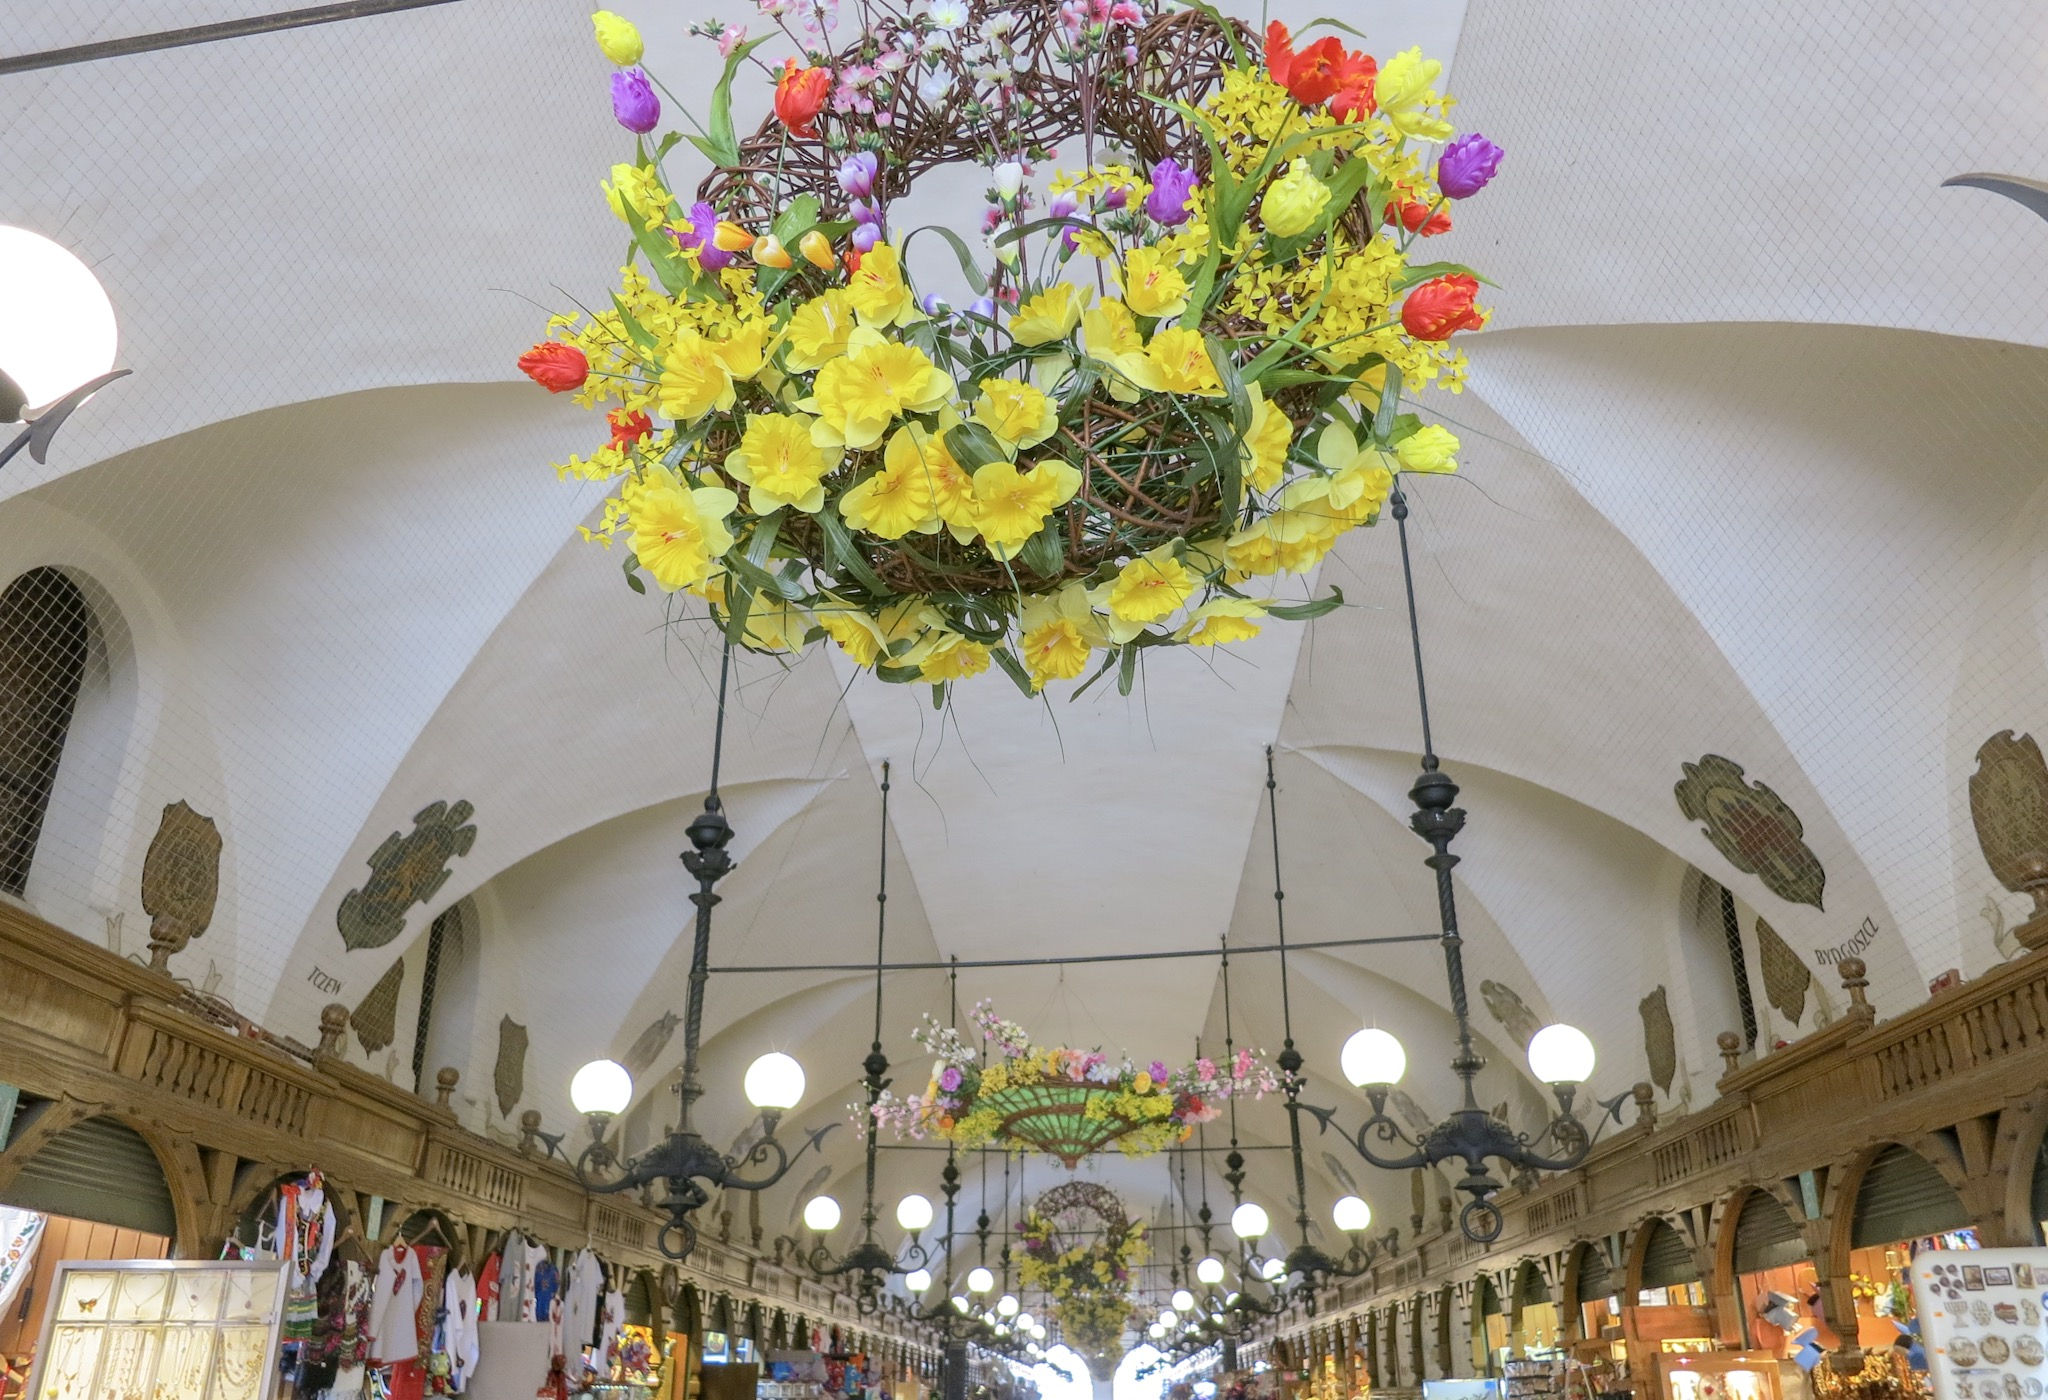 Krakow's Cloth Hall decorated with wreaths for Easter